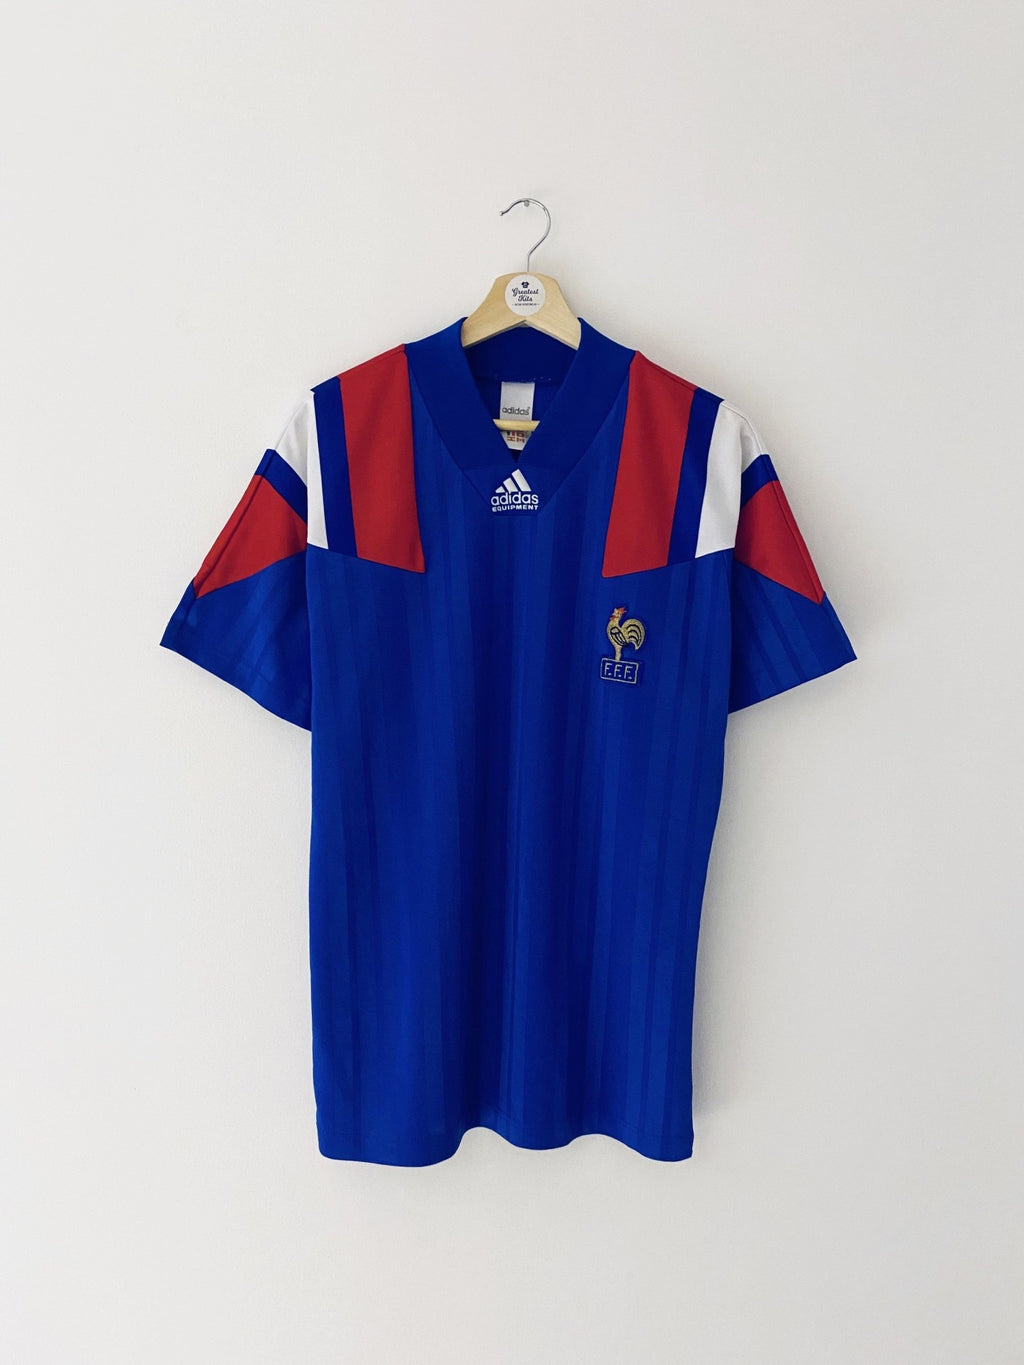 1992/94 France Home Shirt (S/M) 9/10